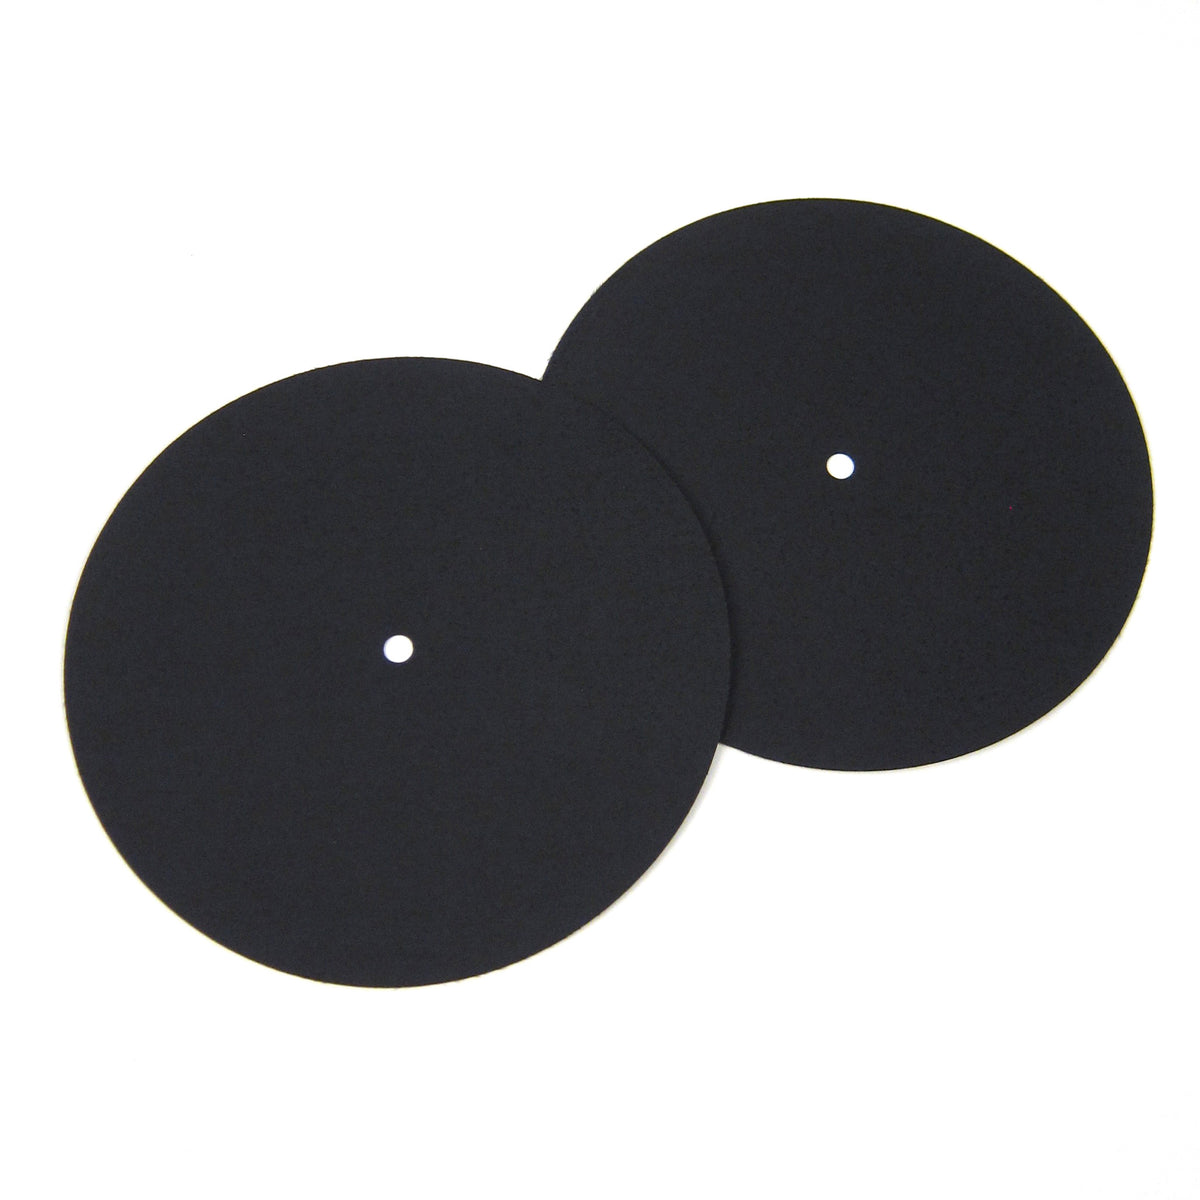 "Thud Rumble: Baby Butter Rugs 7"" (Pair) - Black"